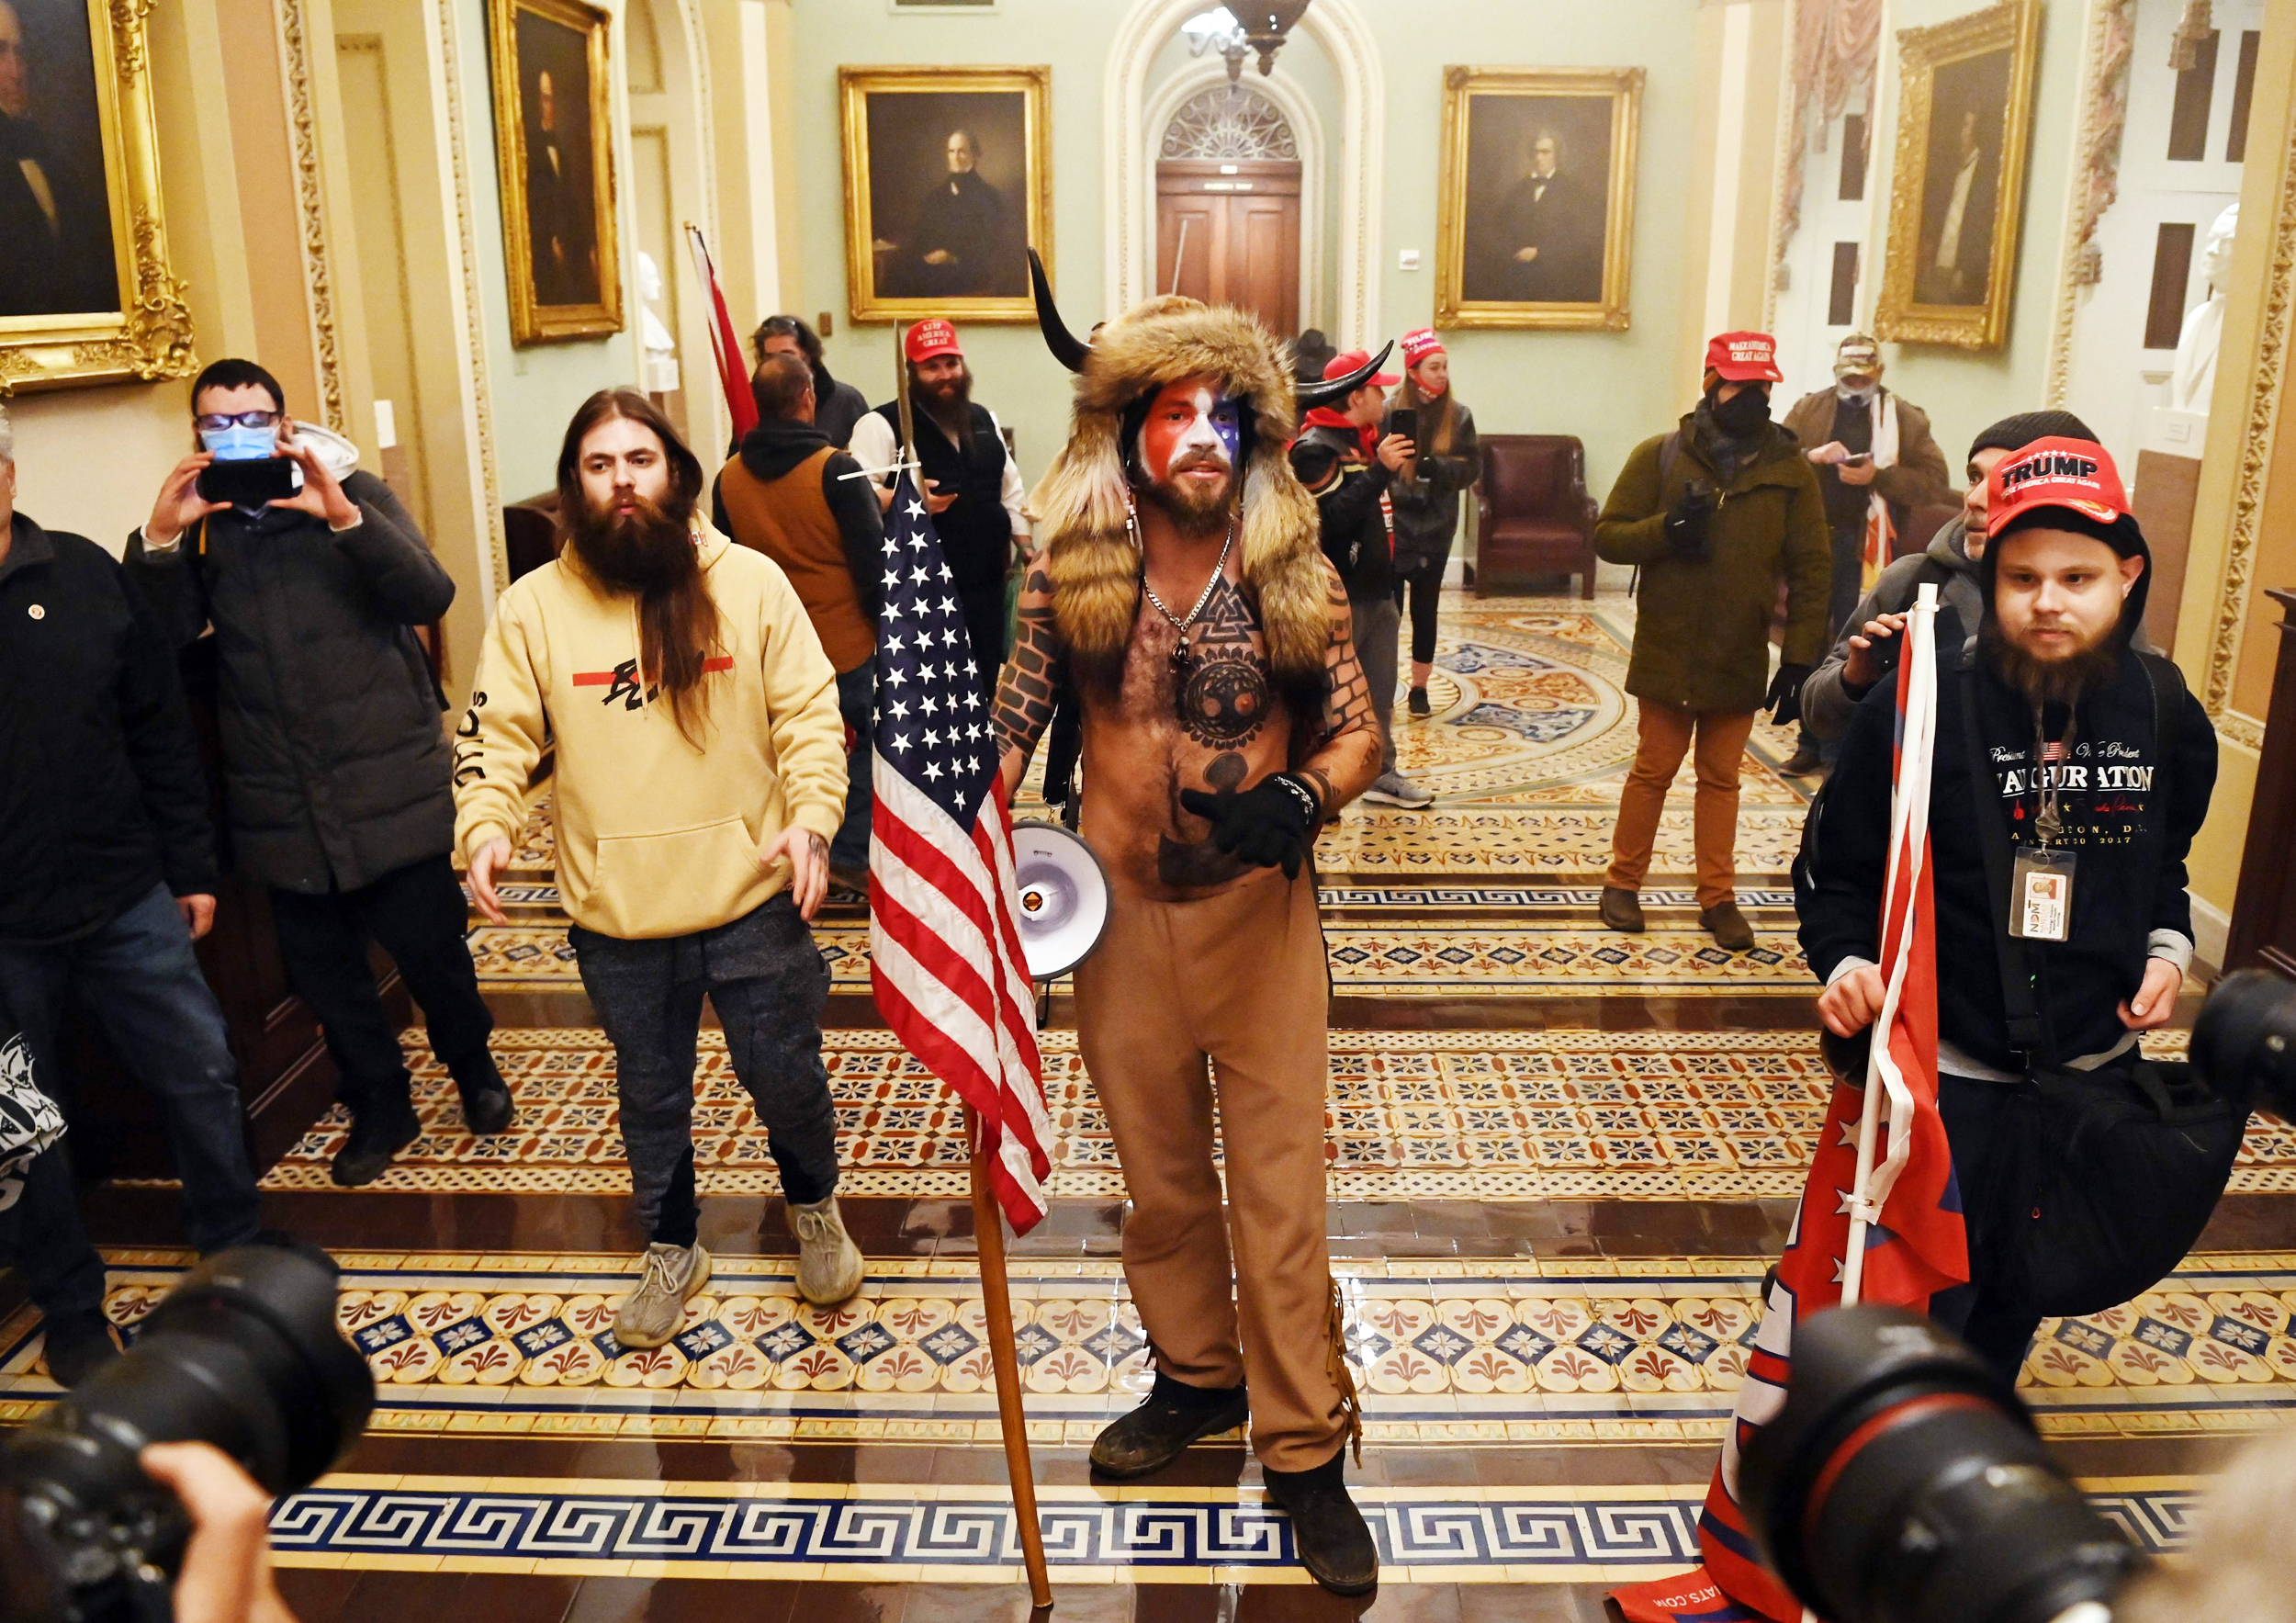 Capitol rioter in horned hat gloats as feds work to identify suspects